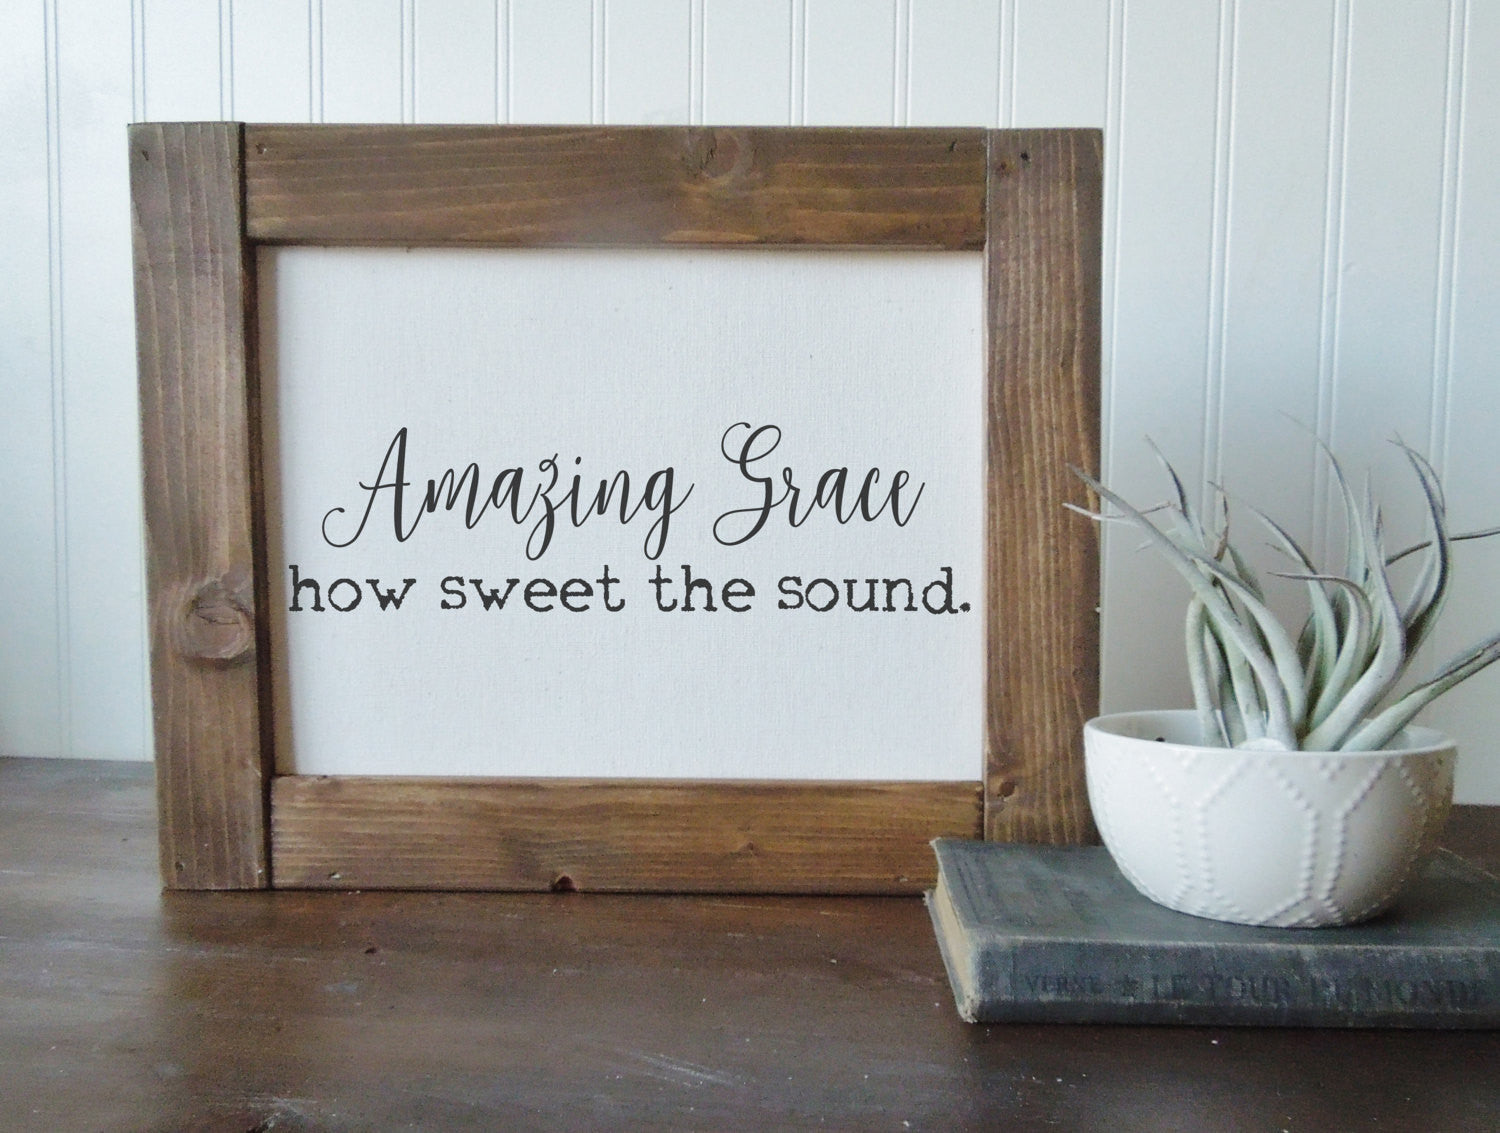 Amazing grace/easter print/canvas print/framed art/home decor/wall art